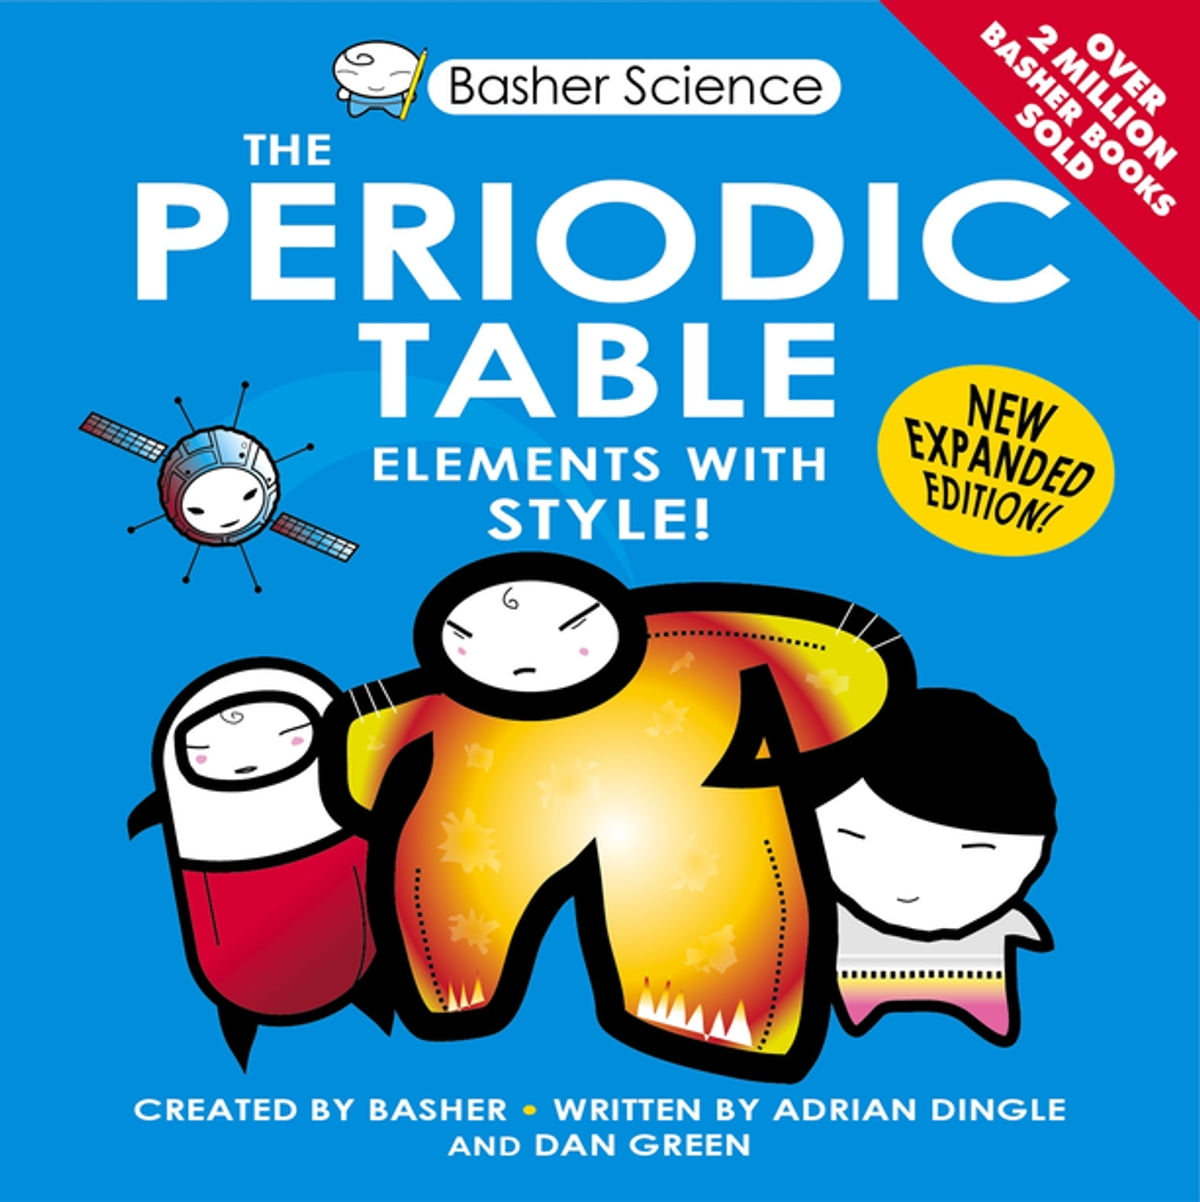 Basher science the periodic table ebook by adrian dingle basher science the periodic table ebook by adrian dingle 9780753432174 rakuten kobo gamestrikefo Gallery